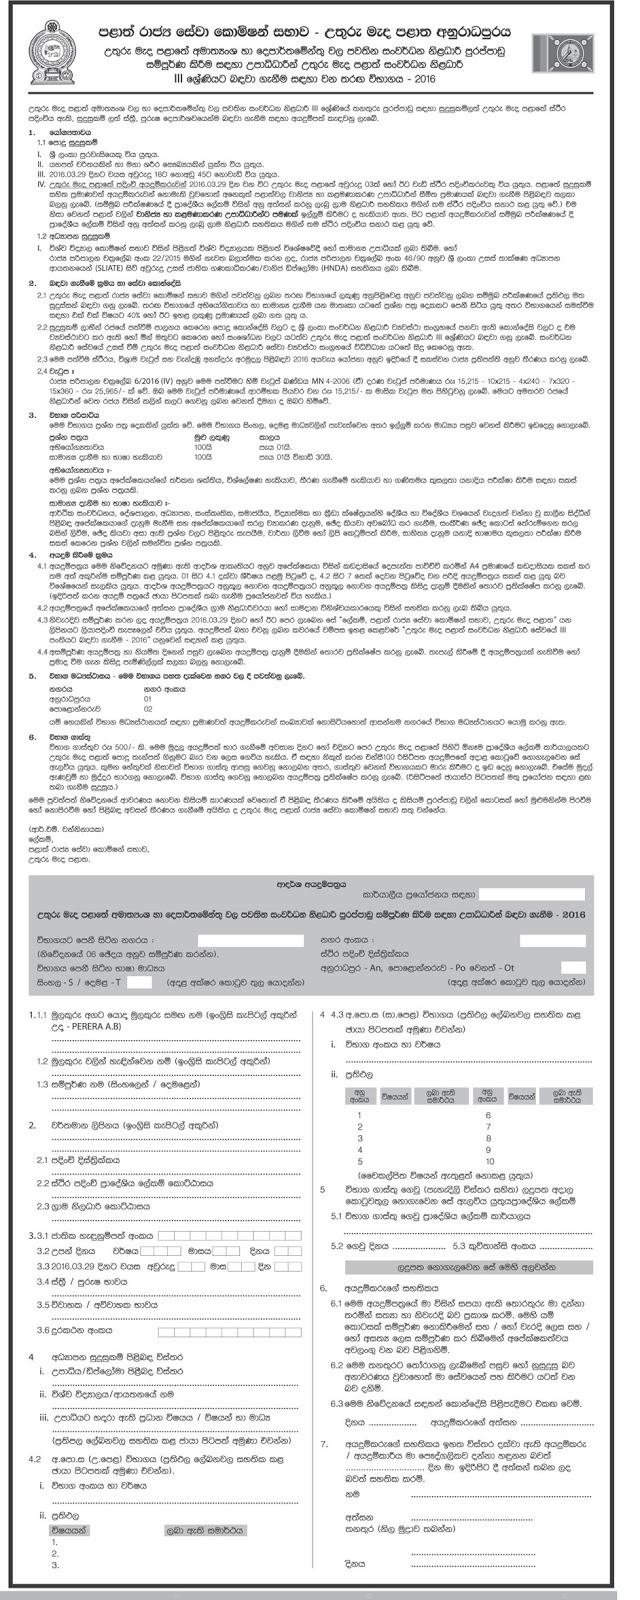 Vacancies - graduates of the competitive examination for recruitment to Grade III North Central Provincial Development Officer to be filled in the Development Office, Ministries and Departments of the North Central Province - Public Service Commission - North Central Province, Anuradhapura